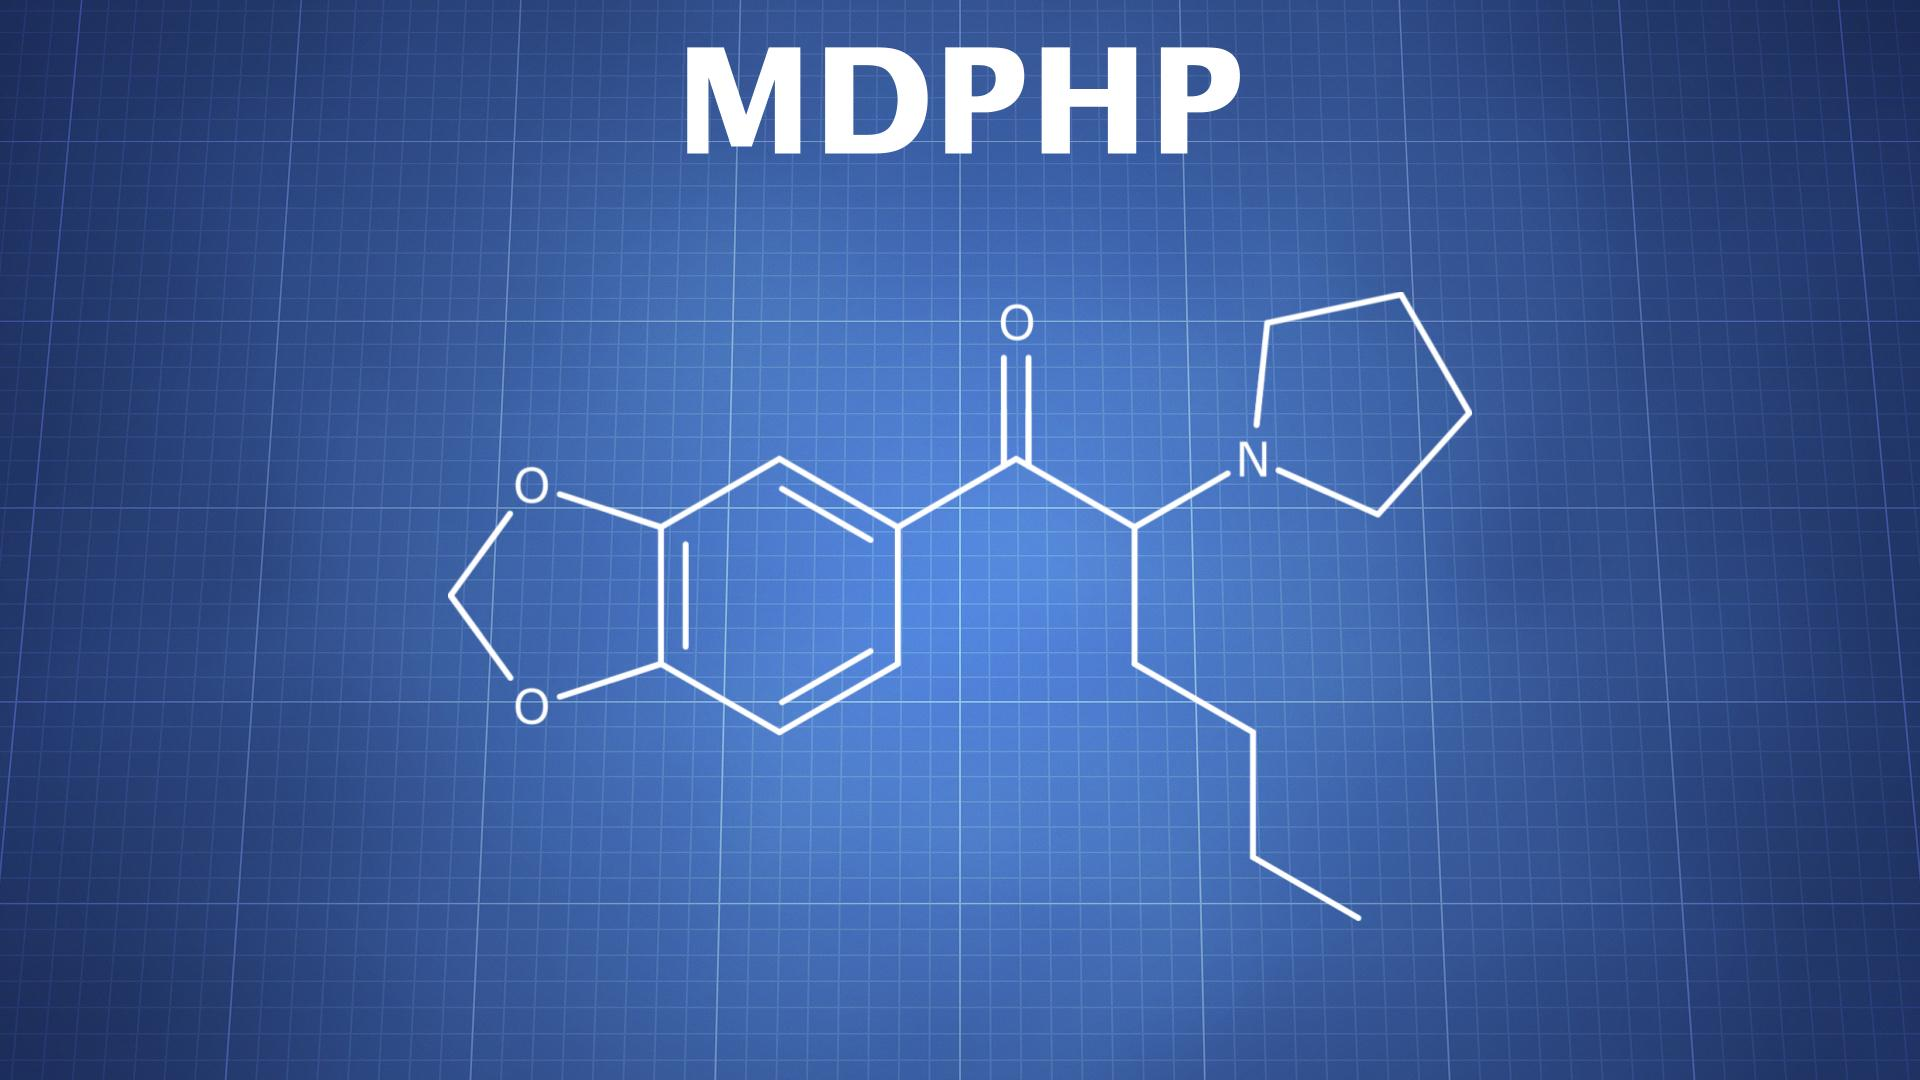 MDPHP - The Drug Classroom